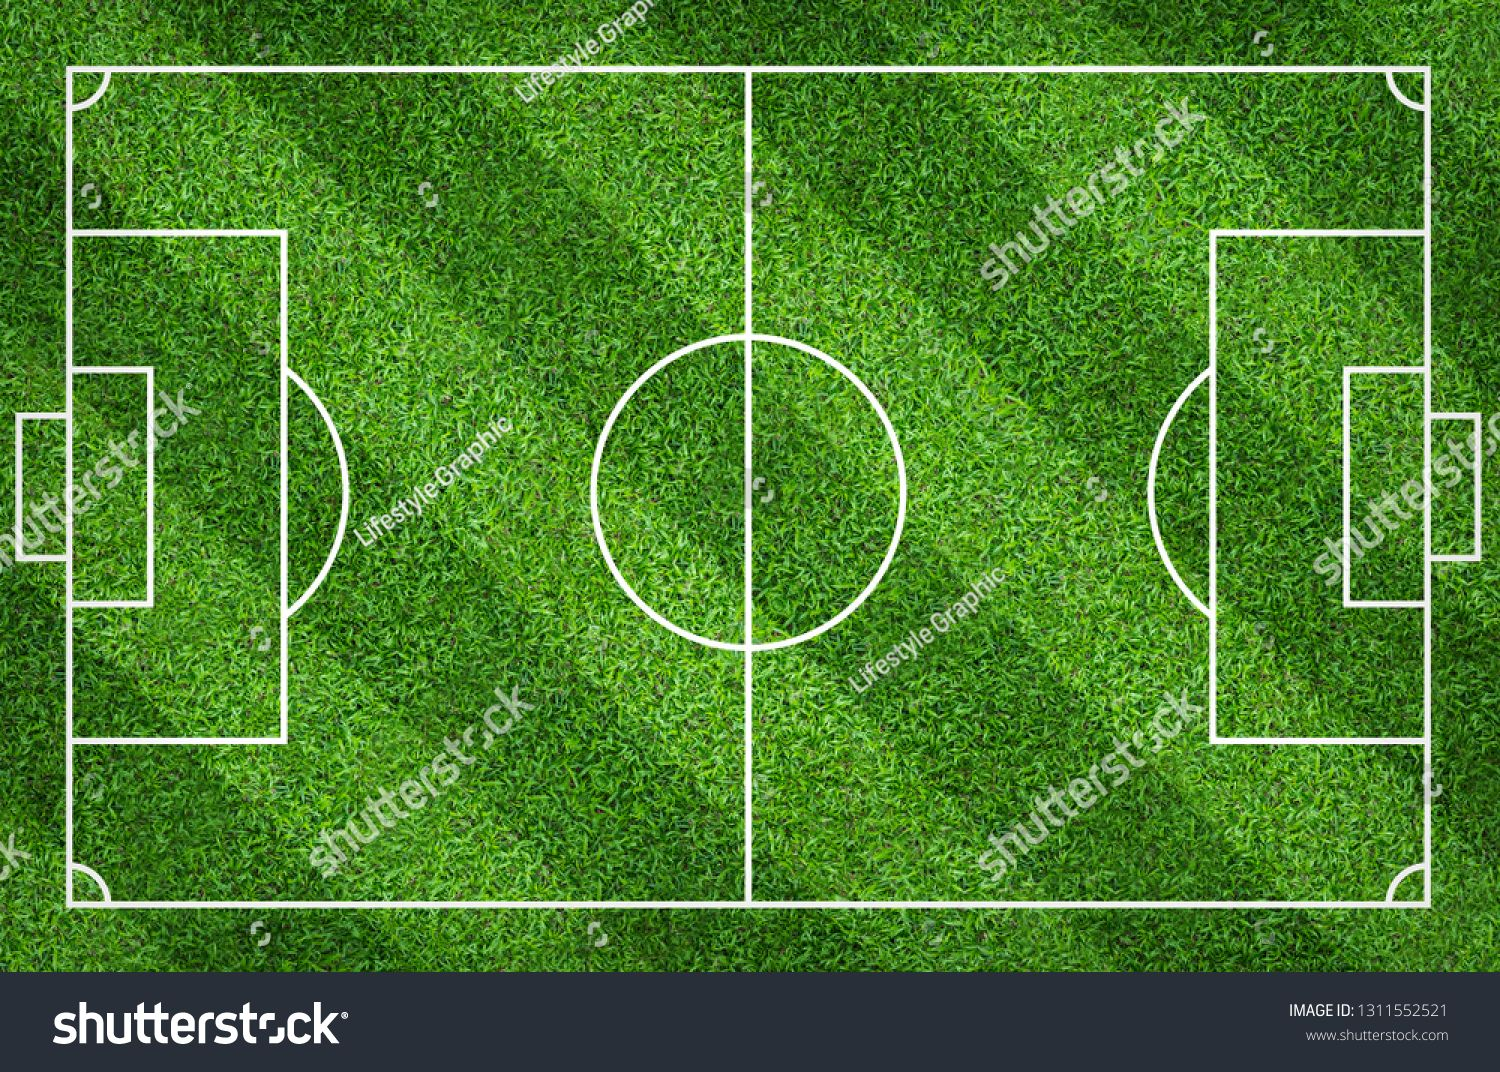 Football Field Or Soccer Field For Background Green Lawn Court For Create Sport Game Ad Ad Background Green Soccer Fo Soccer Field Football Field Field